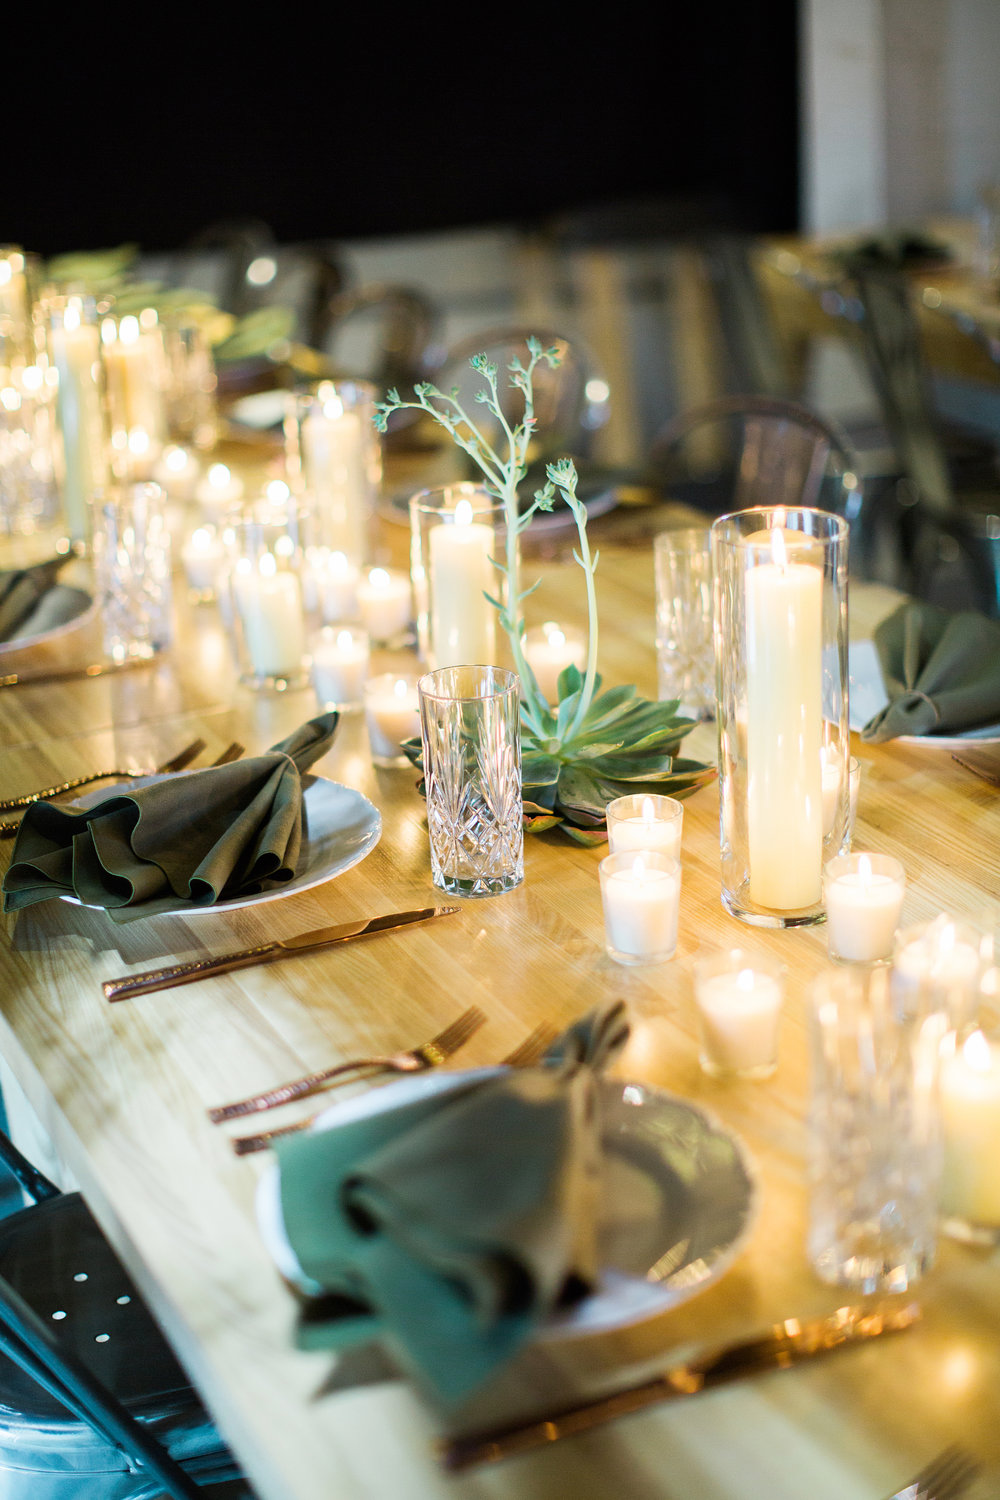 Succulents & Pillar Candles at Wedding Table